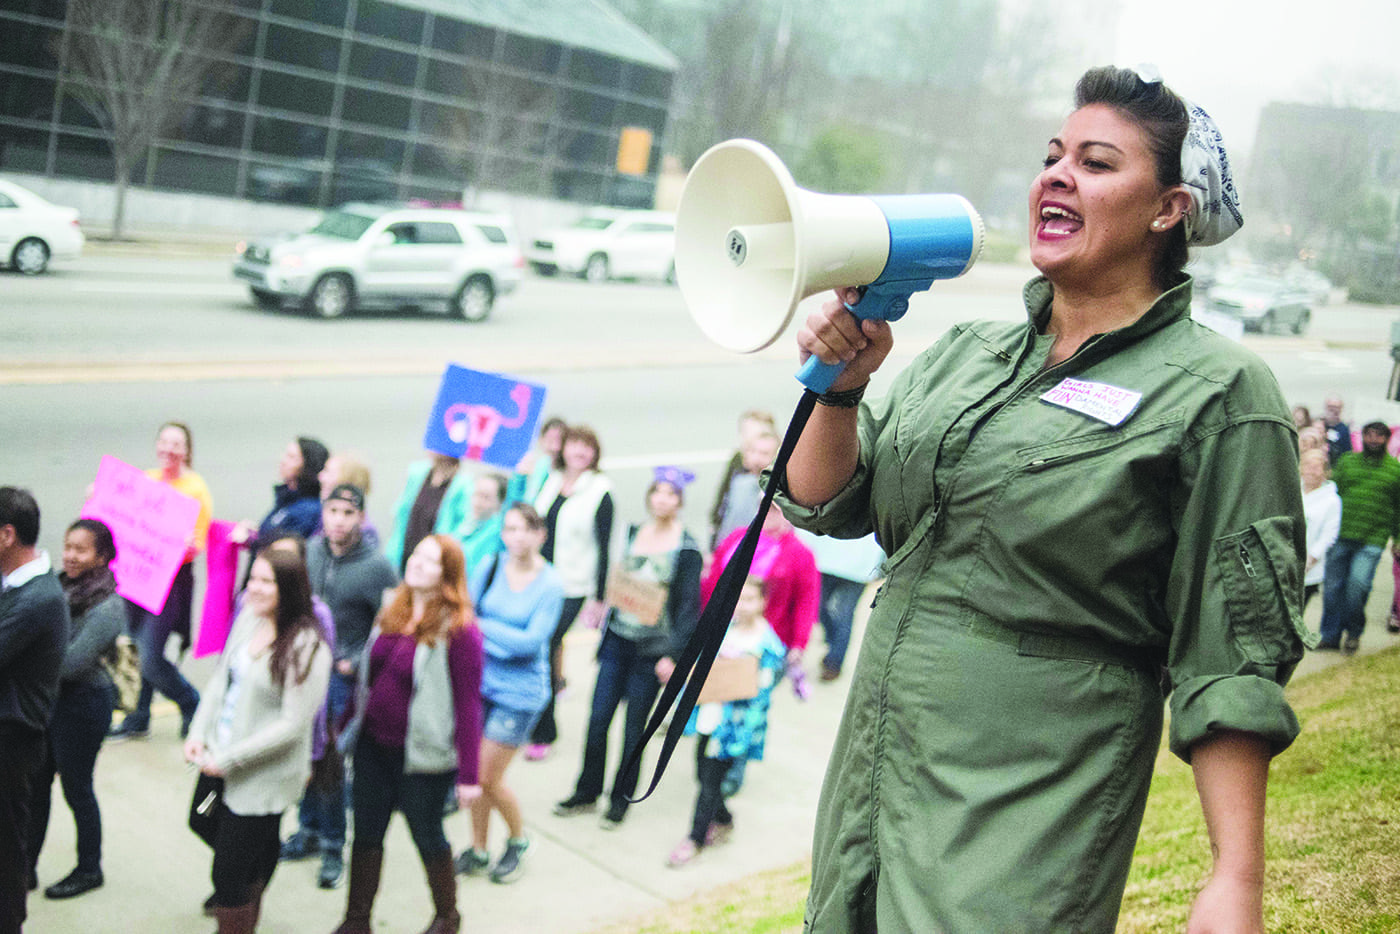 March In Defense Of Women's Rights Held In Columbia, South Carolina